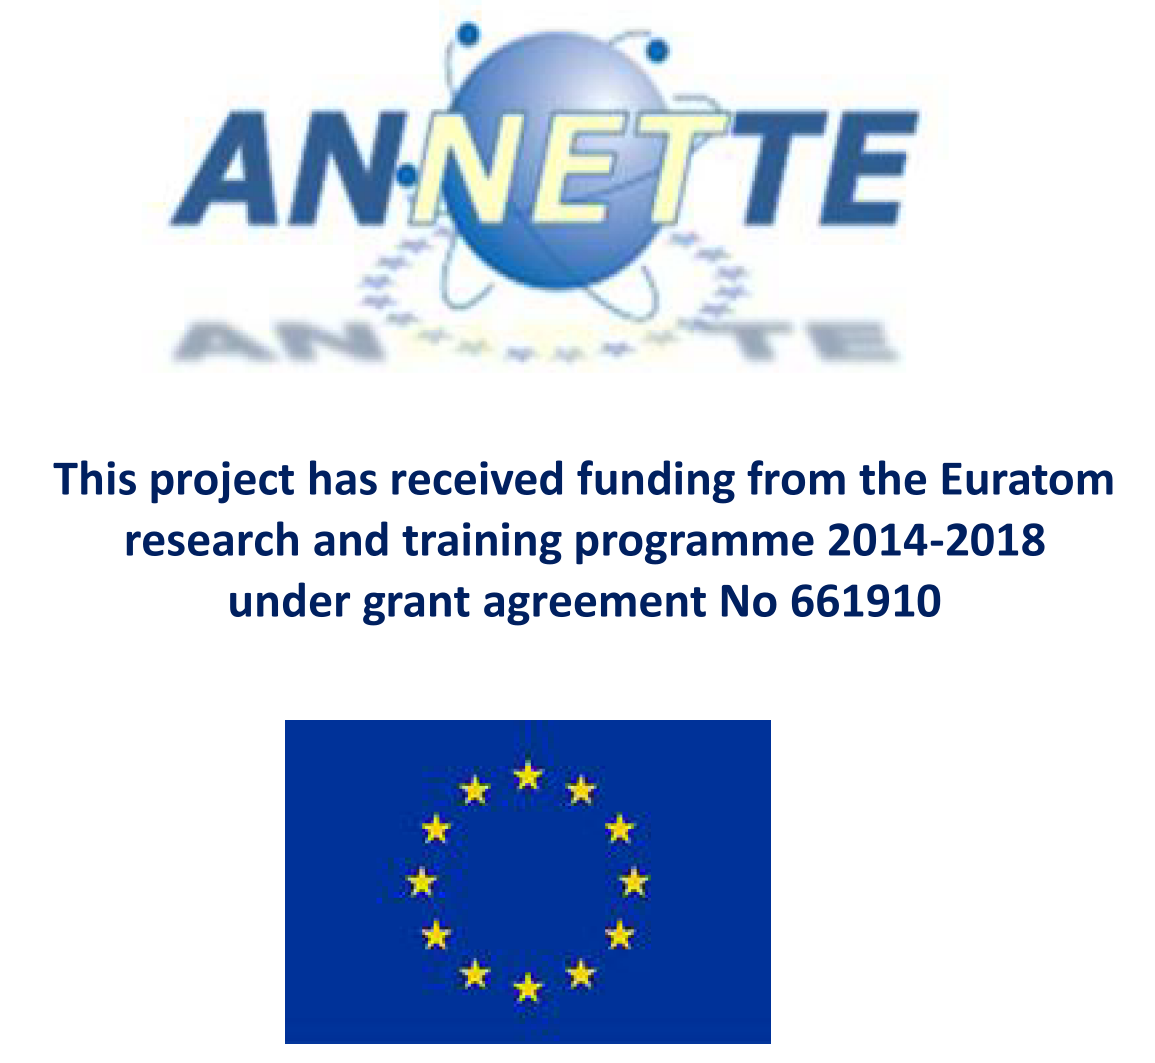 ANNETTE and EU Logos